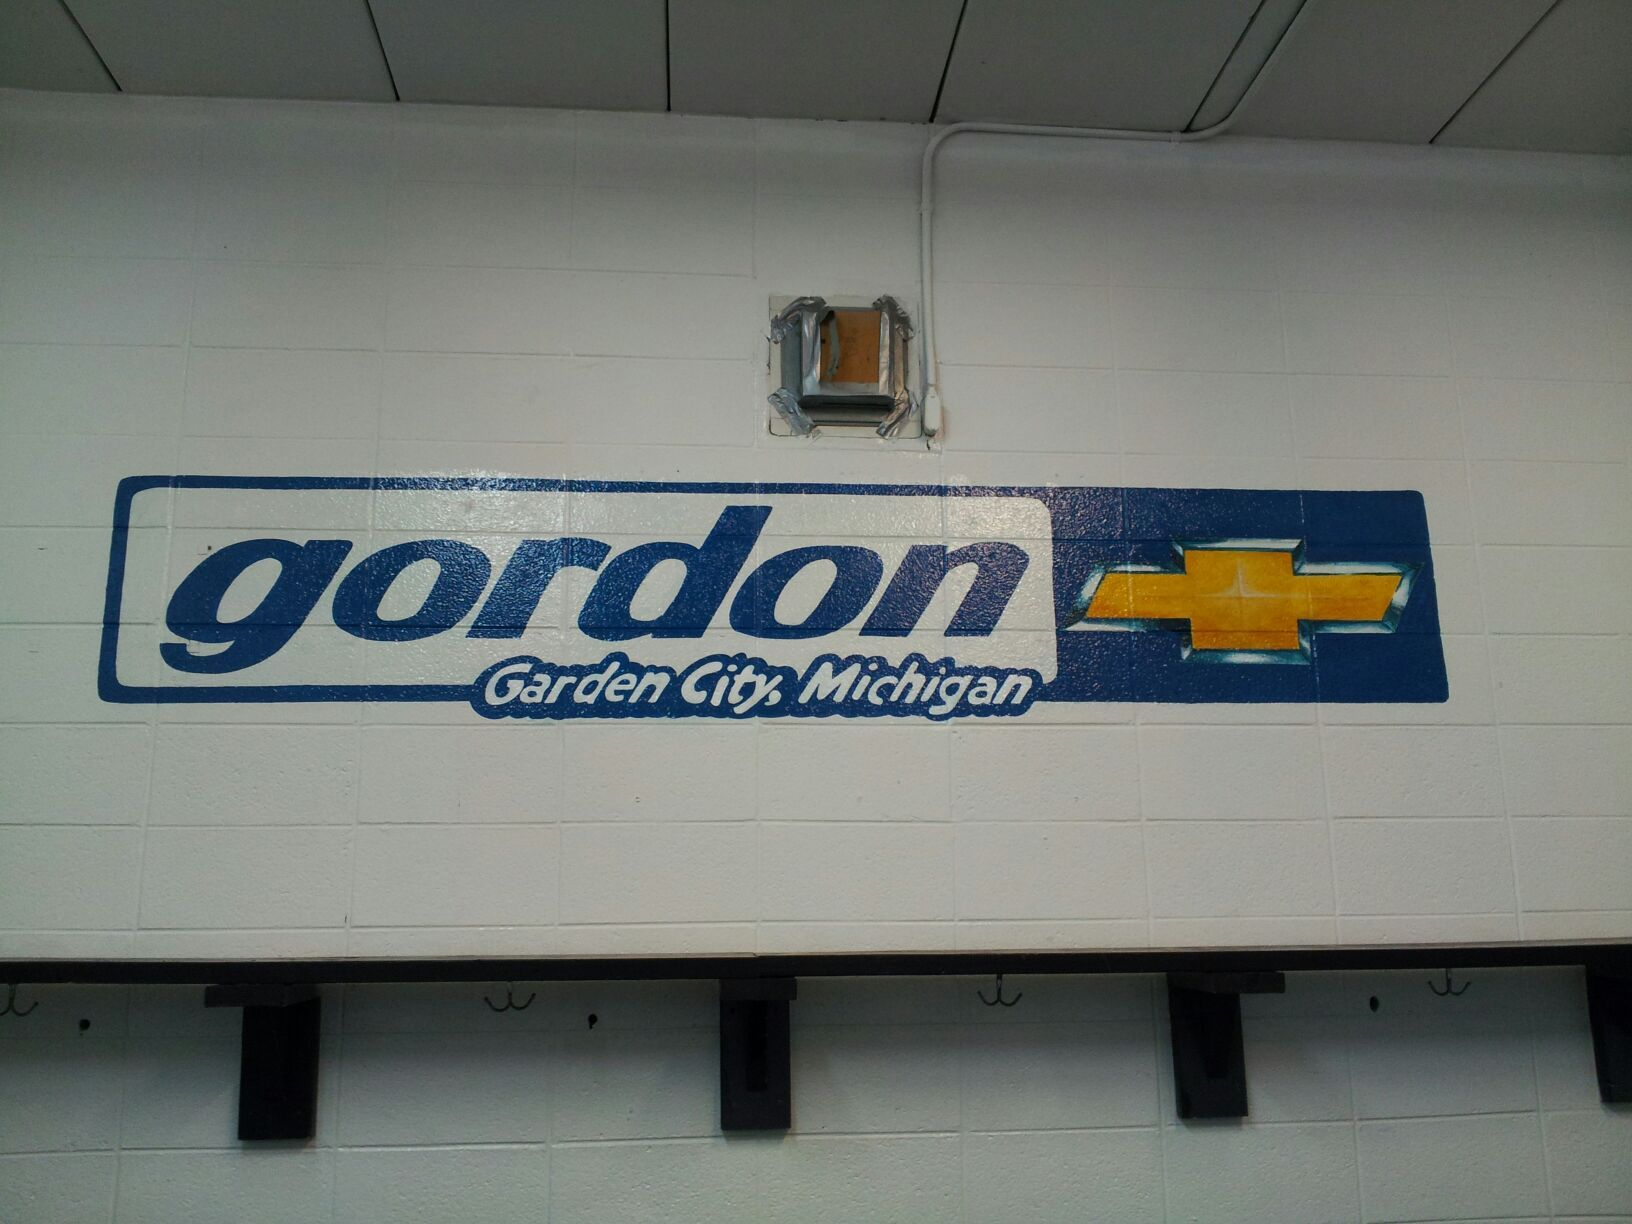 Gordon Chevy In Garden City Is A Proud Sponsor At Mike Modano Arena. A Local